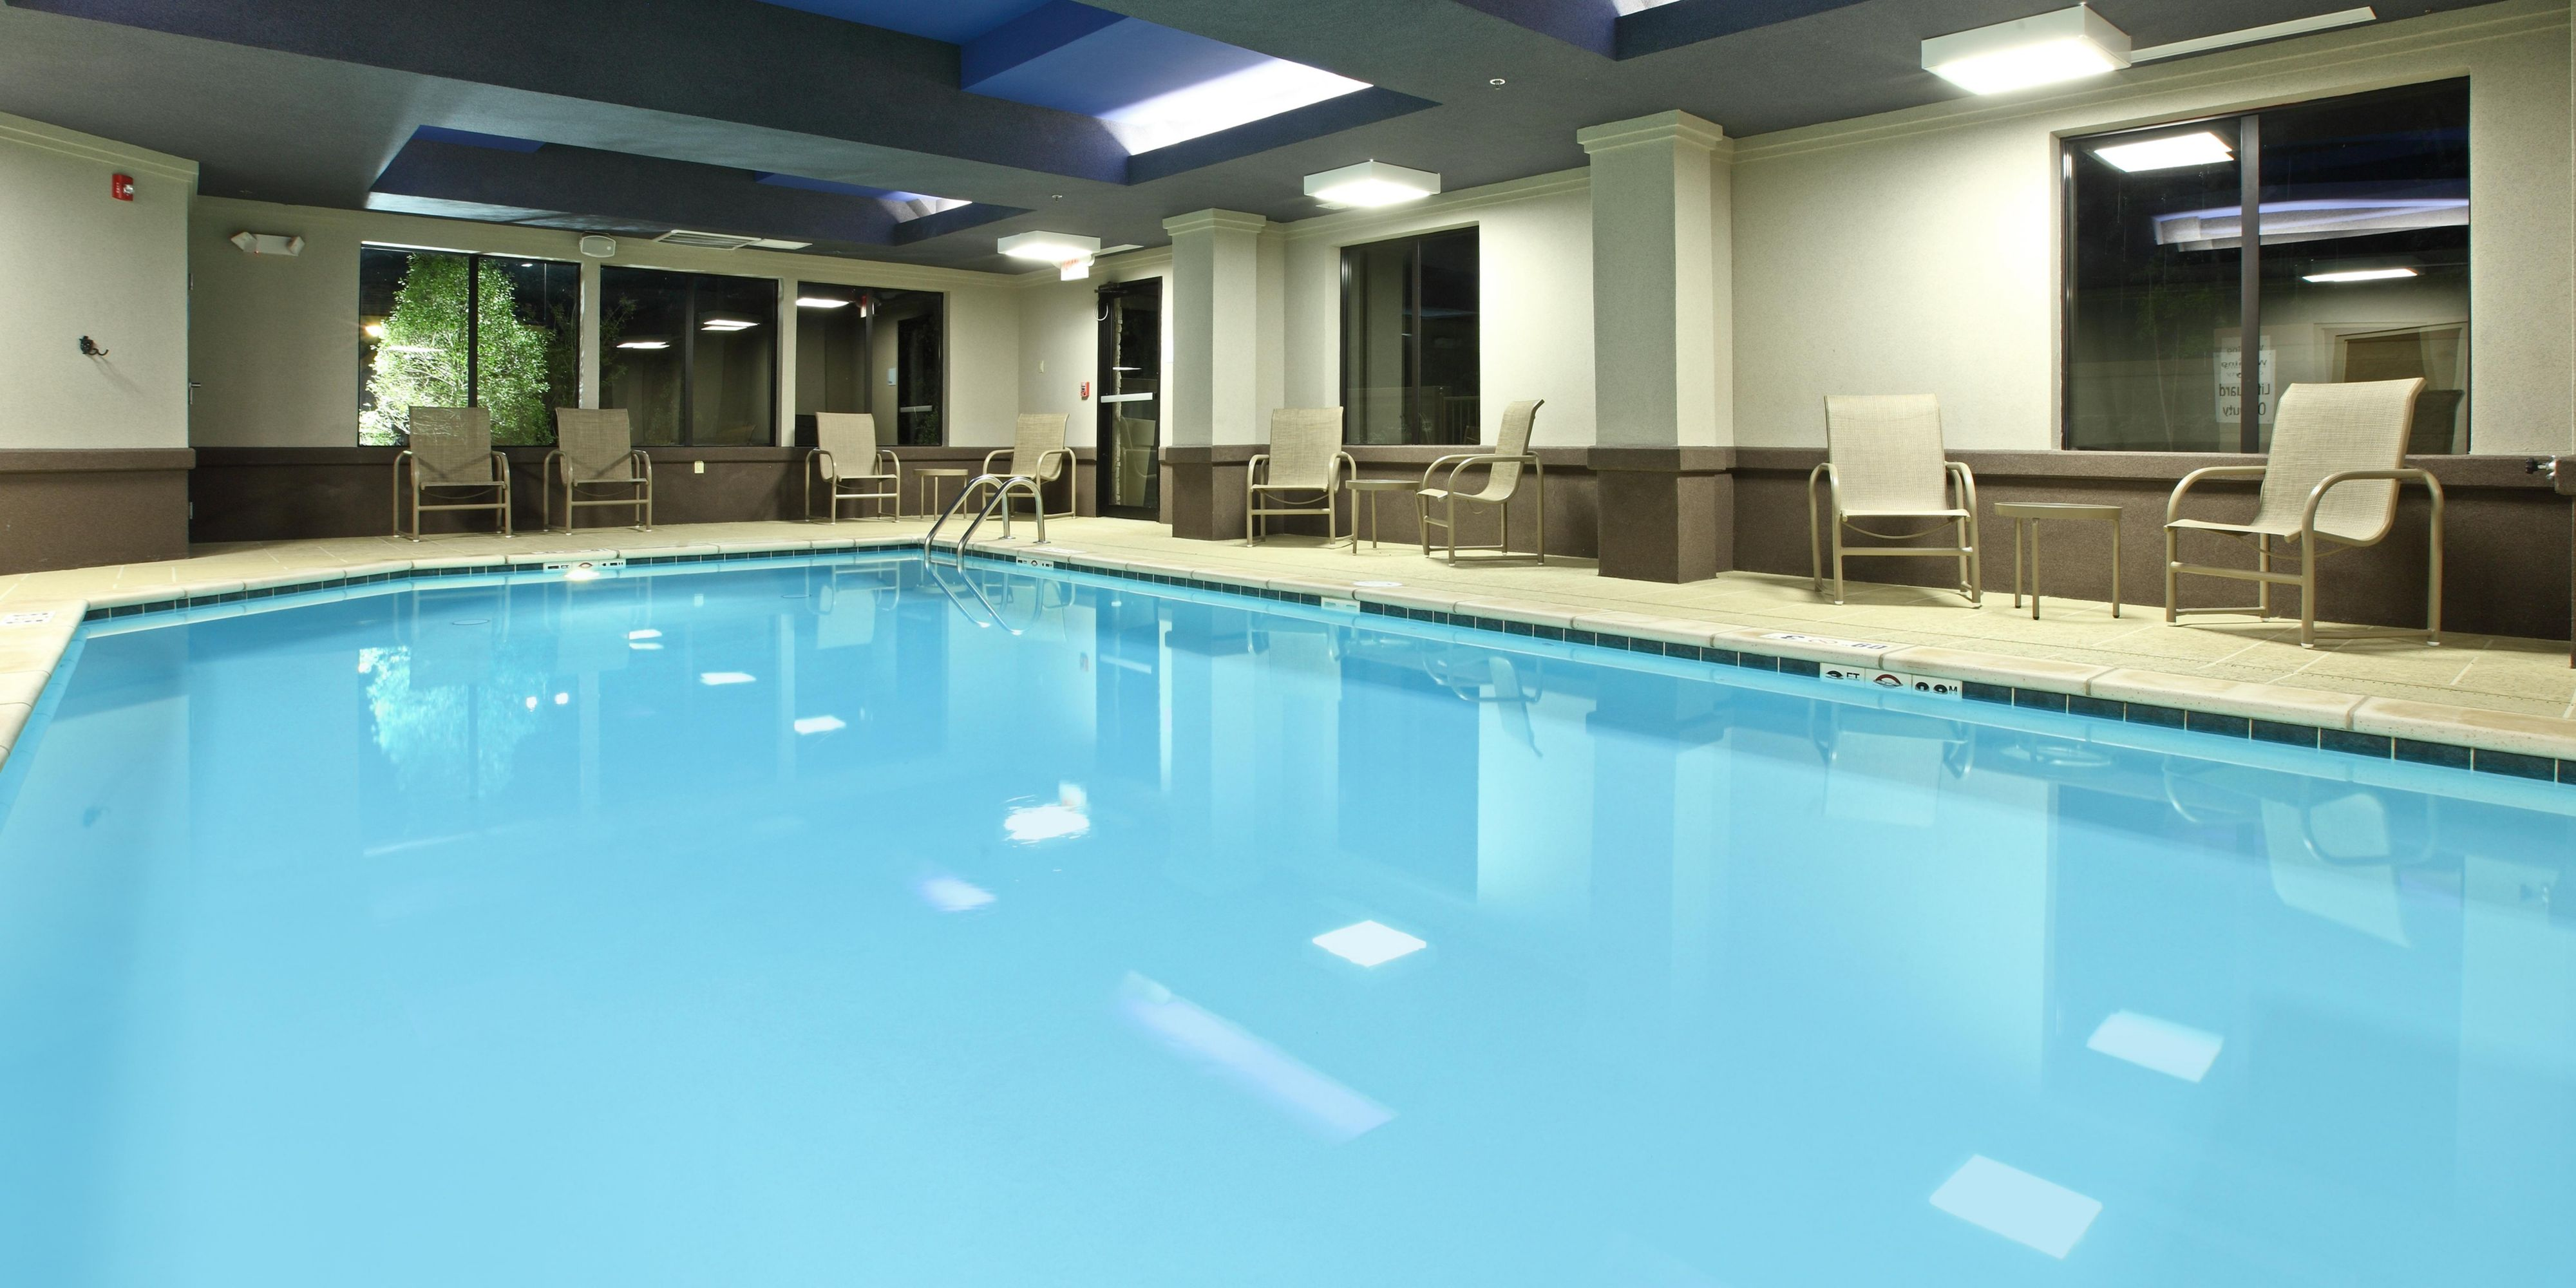 Family leisure little rock arkansas - Internet Access